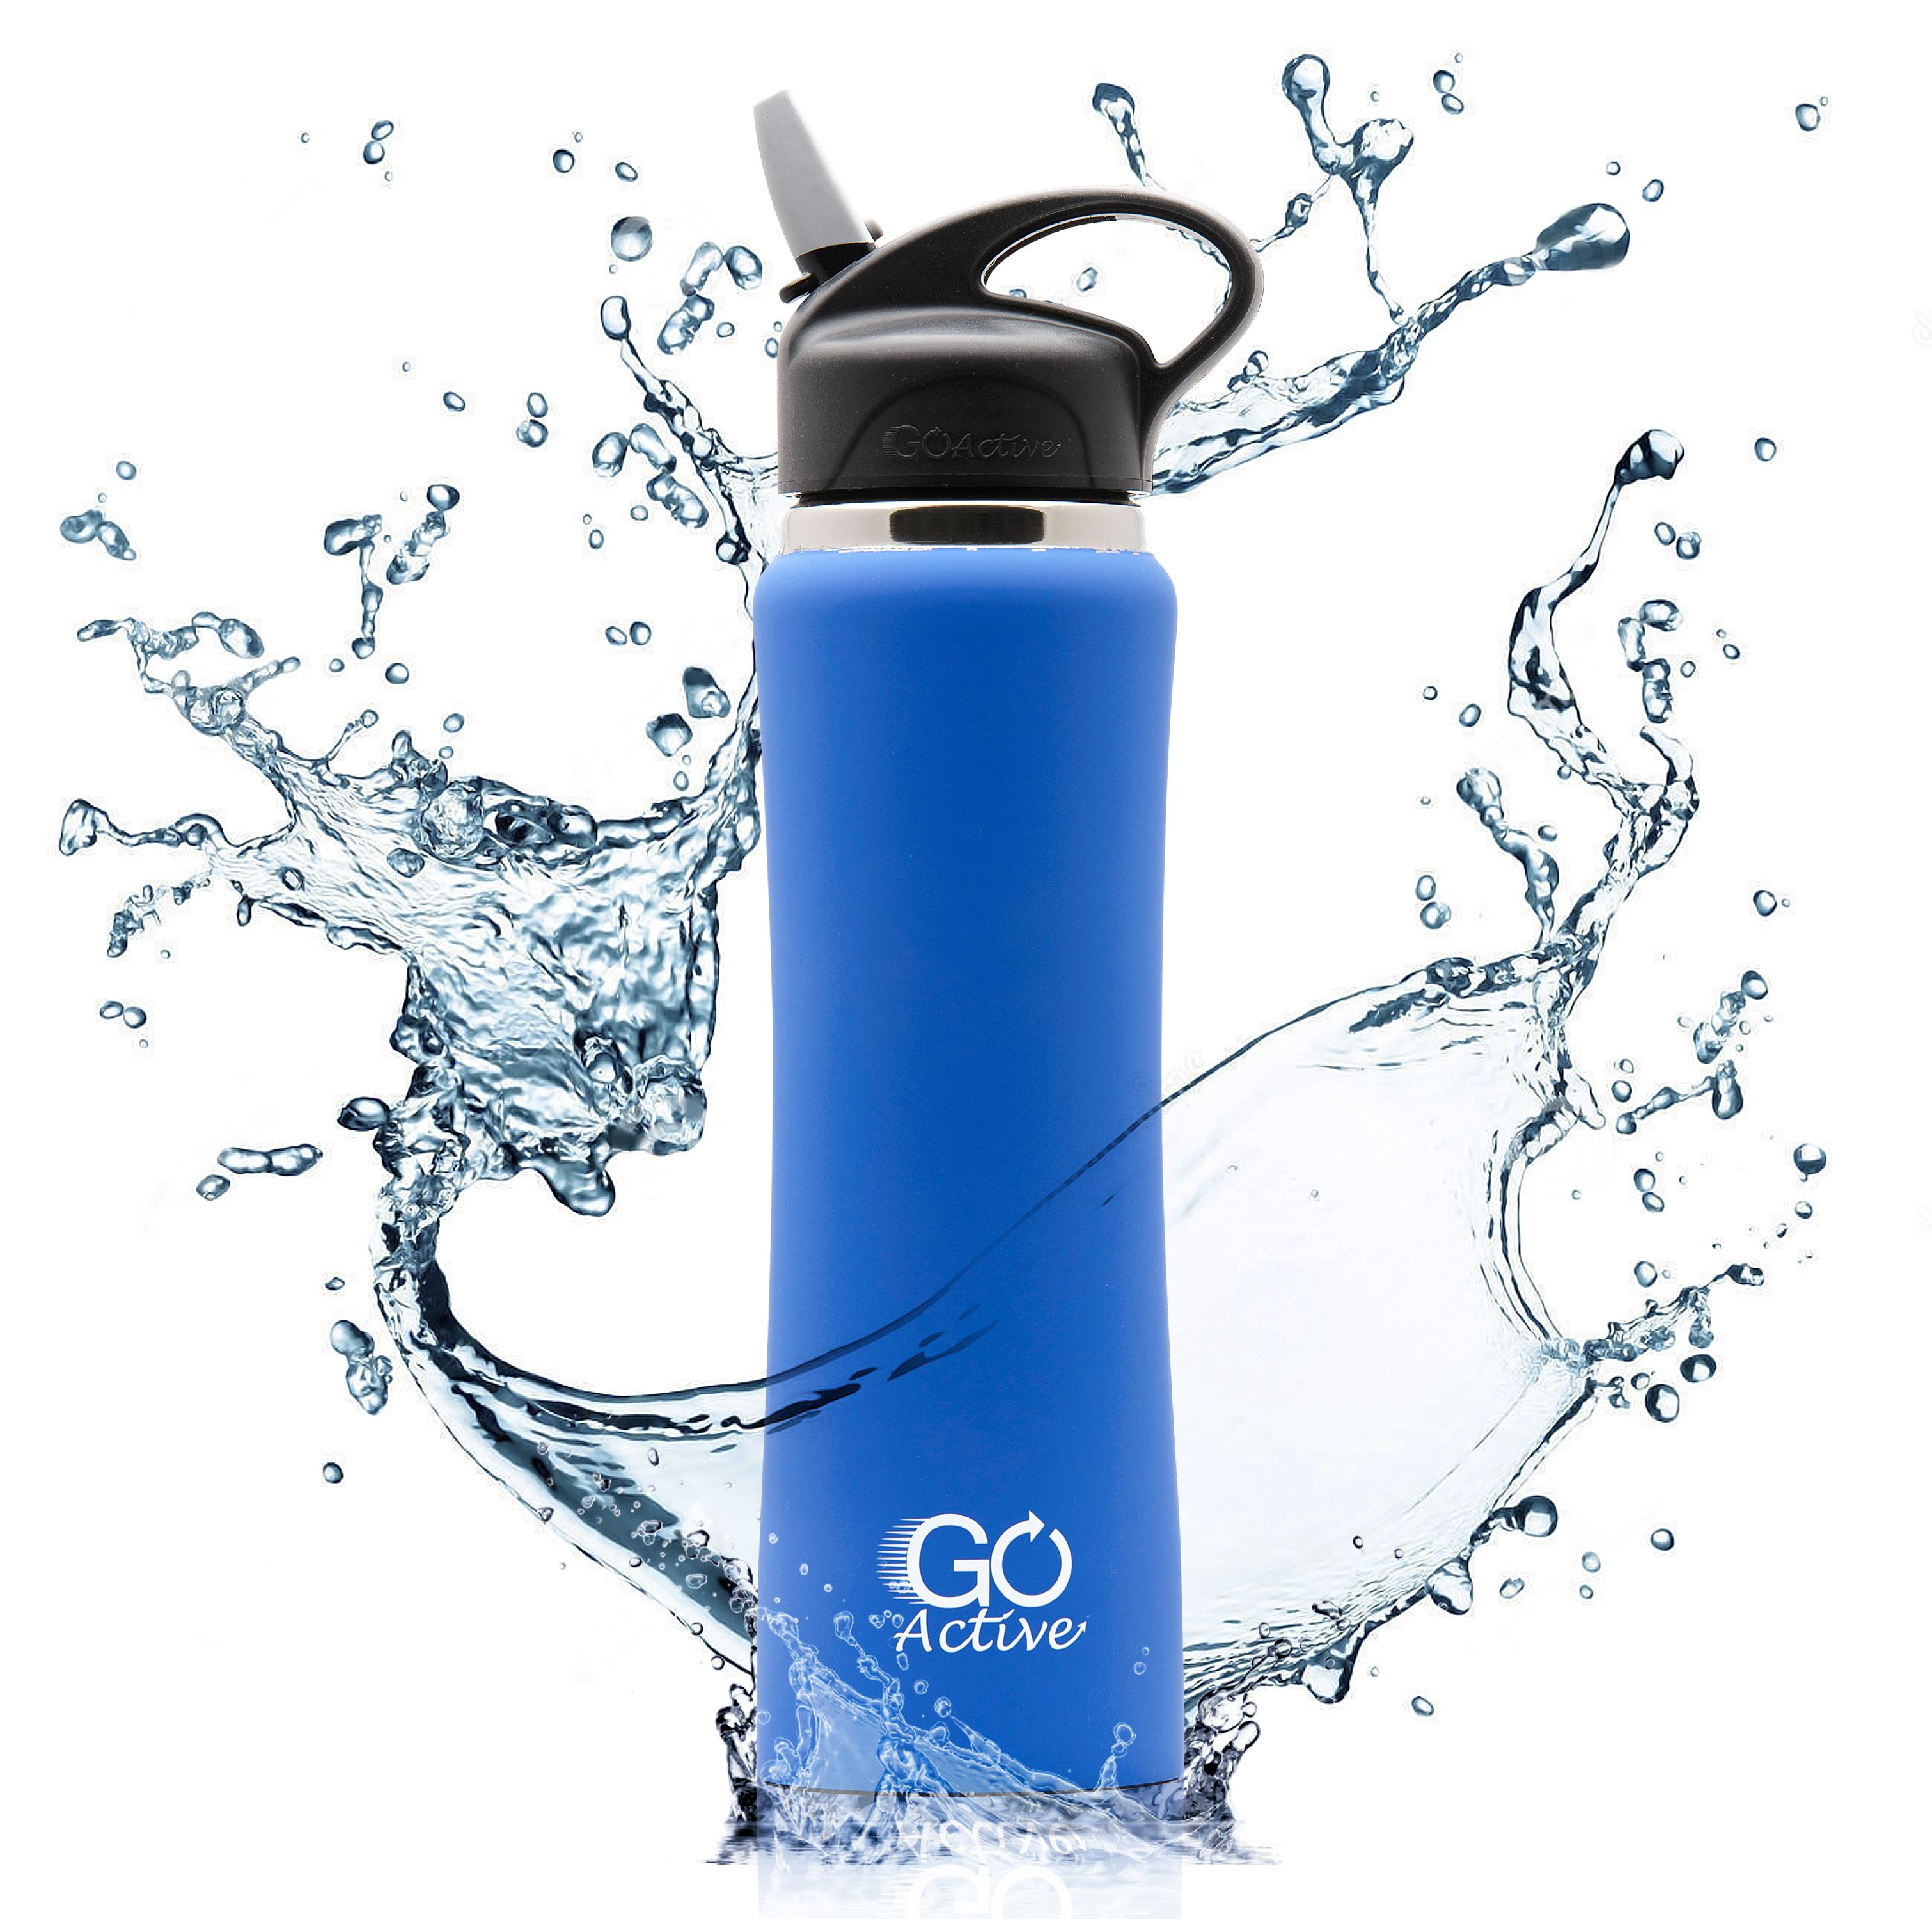 GO Active - Insulated Water Bottle with Straw. This Stainless Steel Sport Bottle is Leak Proof, Perfect for Kids, Durable, Vibrant Colors, and keeps ice over 24 hours! 24oz and 1 Liter size